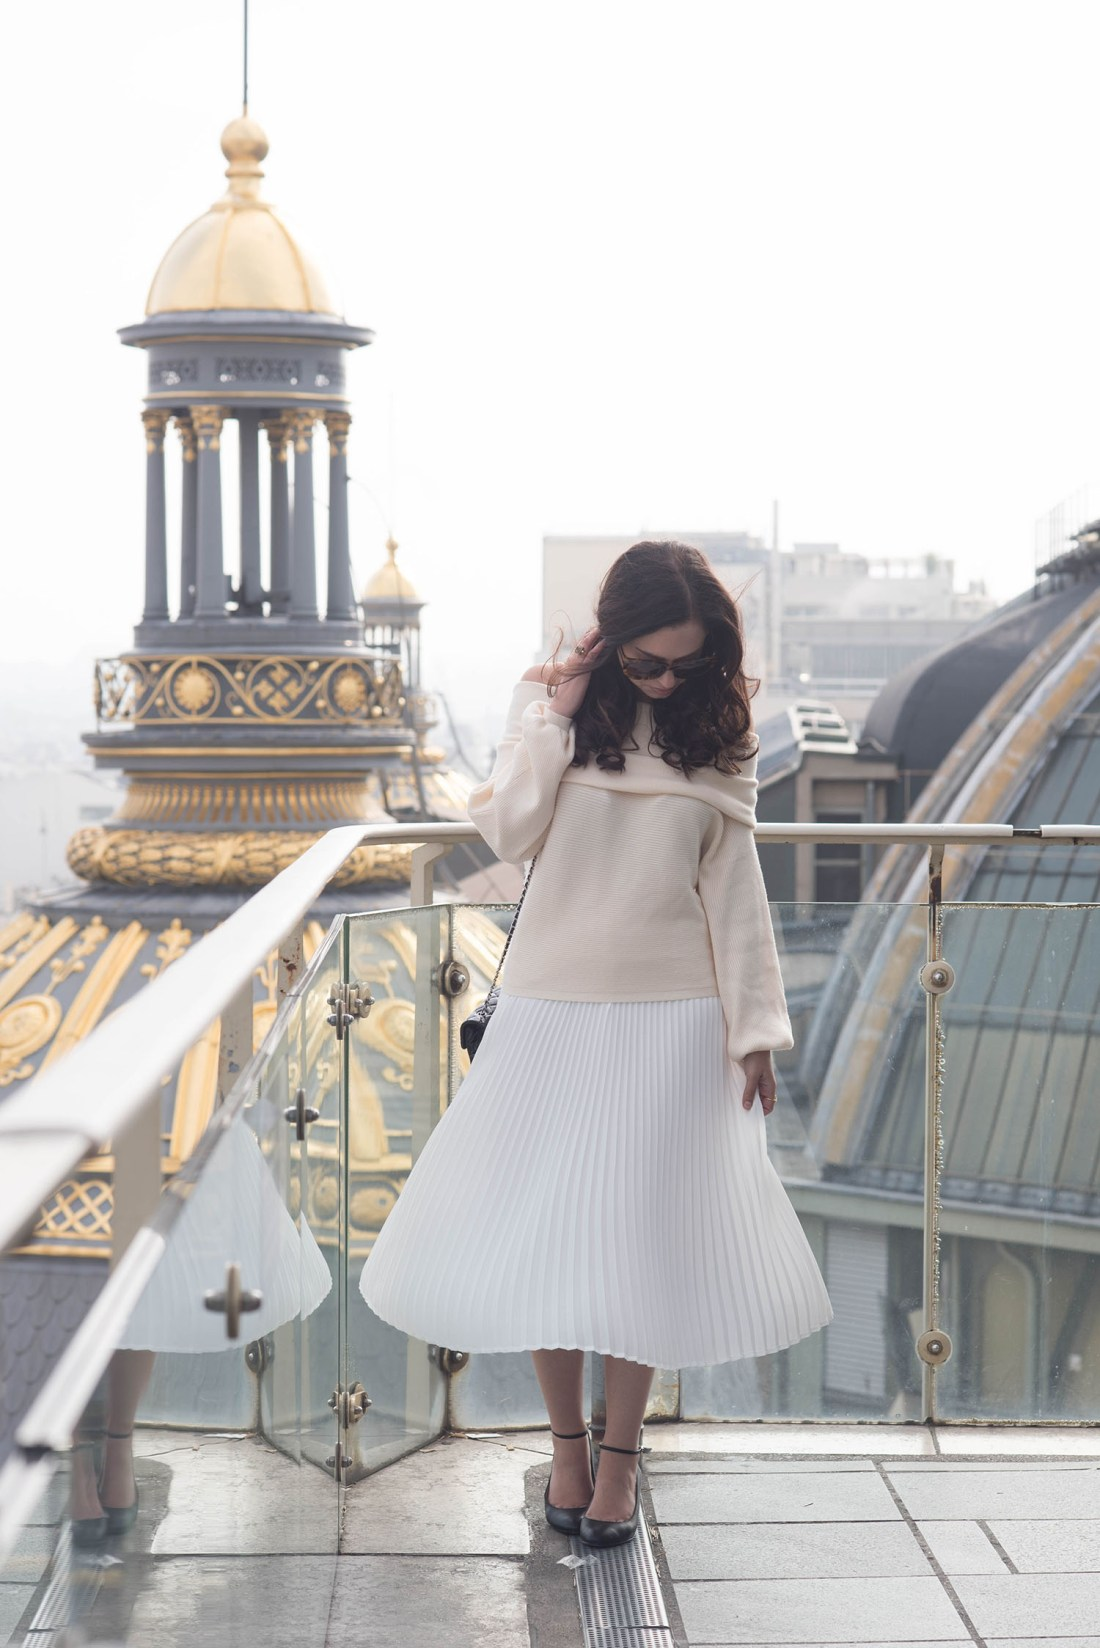 Fashion blogger Cee Fardoe of Coco & Vera stands on the rooftop of Paris department store Printemps wearing a Zara blush sweater and Aritzia pleated skirt